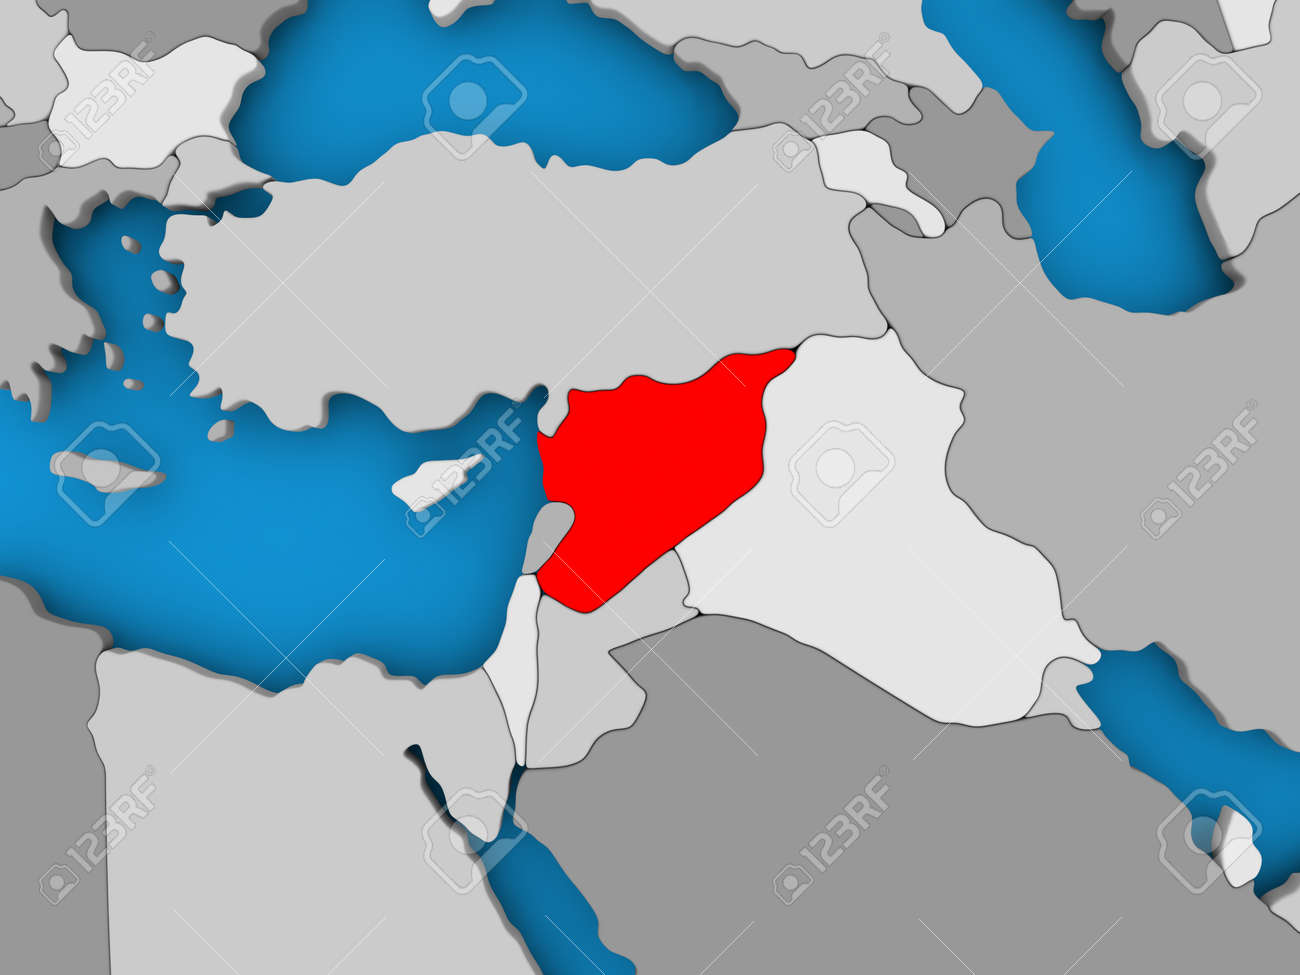 Syria in red on political map 3d illustration stock photo picture illustration syria in red on political map 3d illustration gumiabroncs Gallery